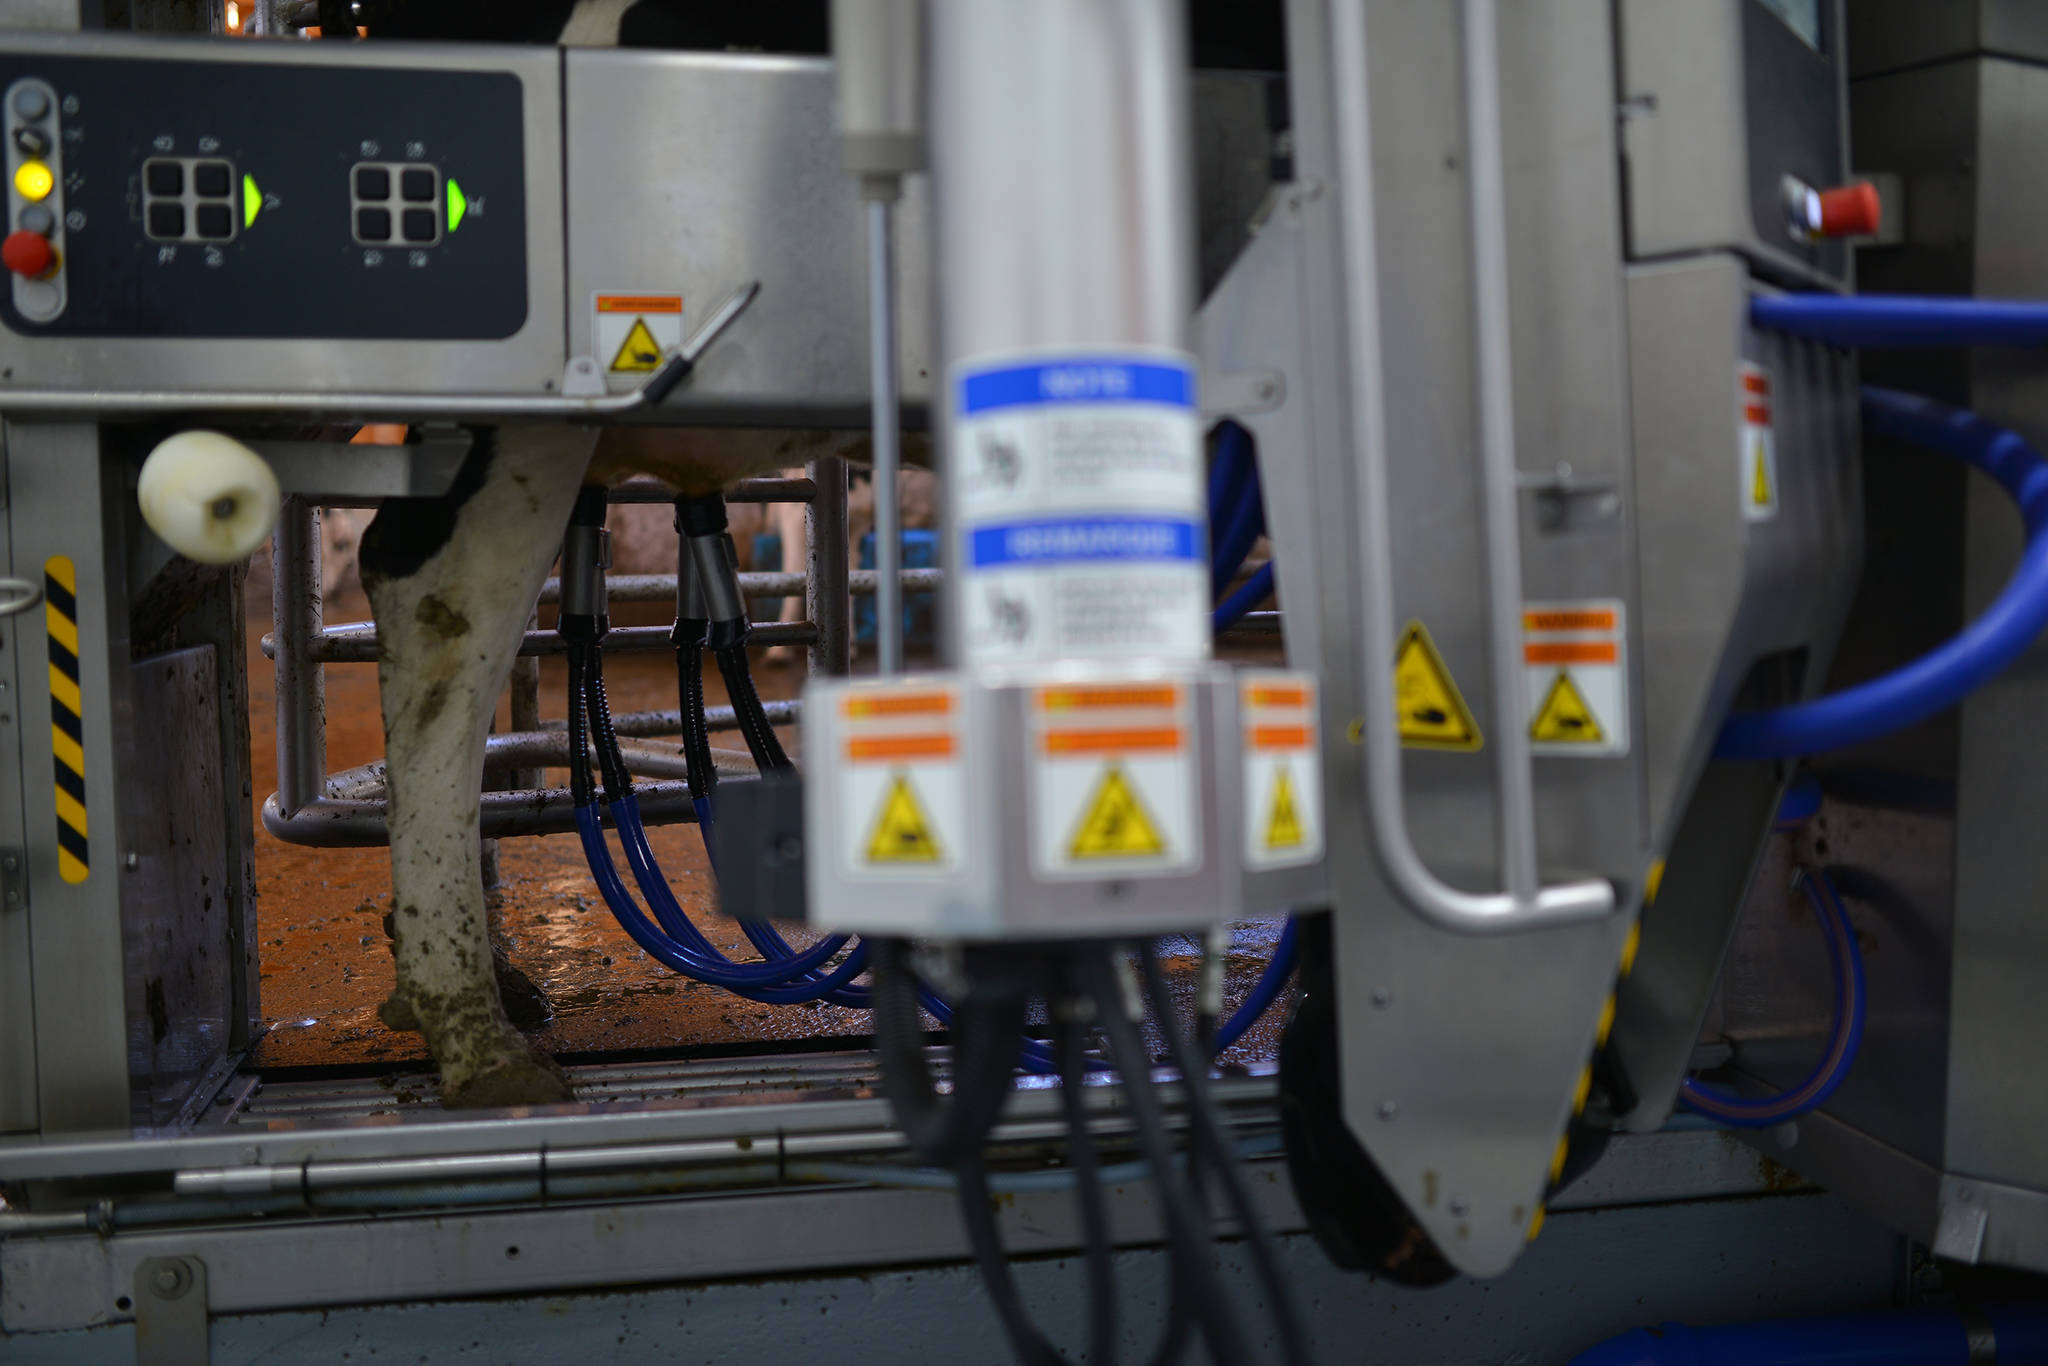 A DeLaval robotic milker has been installed at Tazo Farms in Falkland, among its many features being the ability to inform farmers of any health-related concerns identified during the milking process. The robot knows which cows have been milked, and prevents animals from being milked too often, or not enough. (Phil McLachlan - Black Press Media)